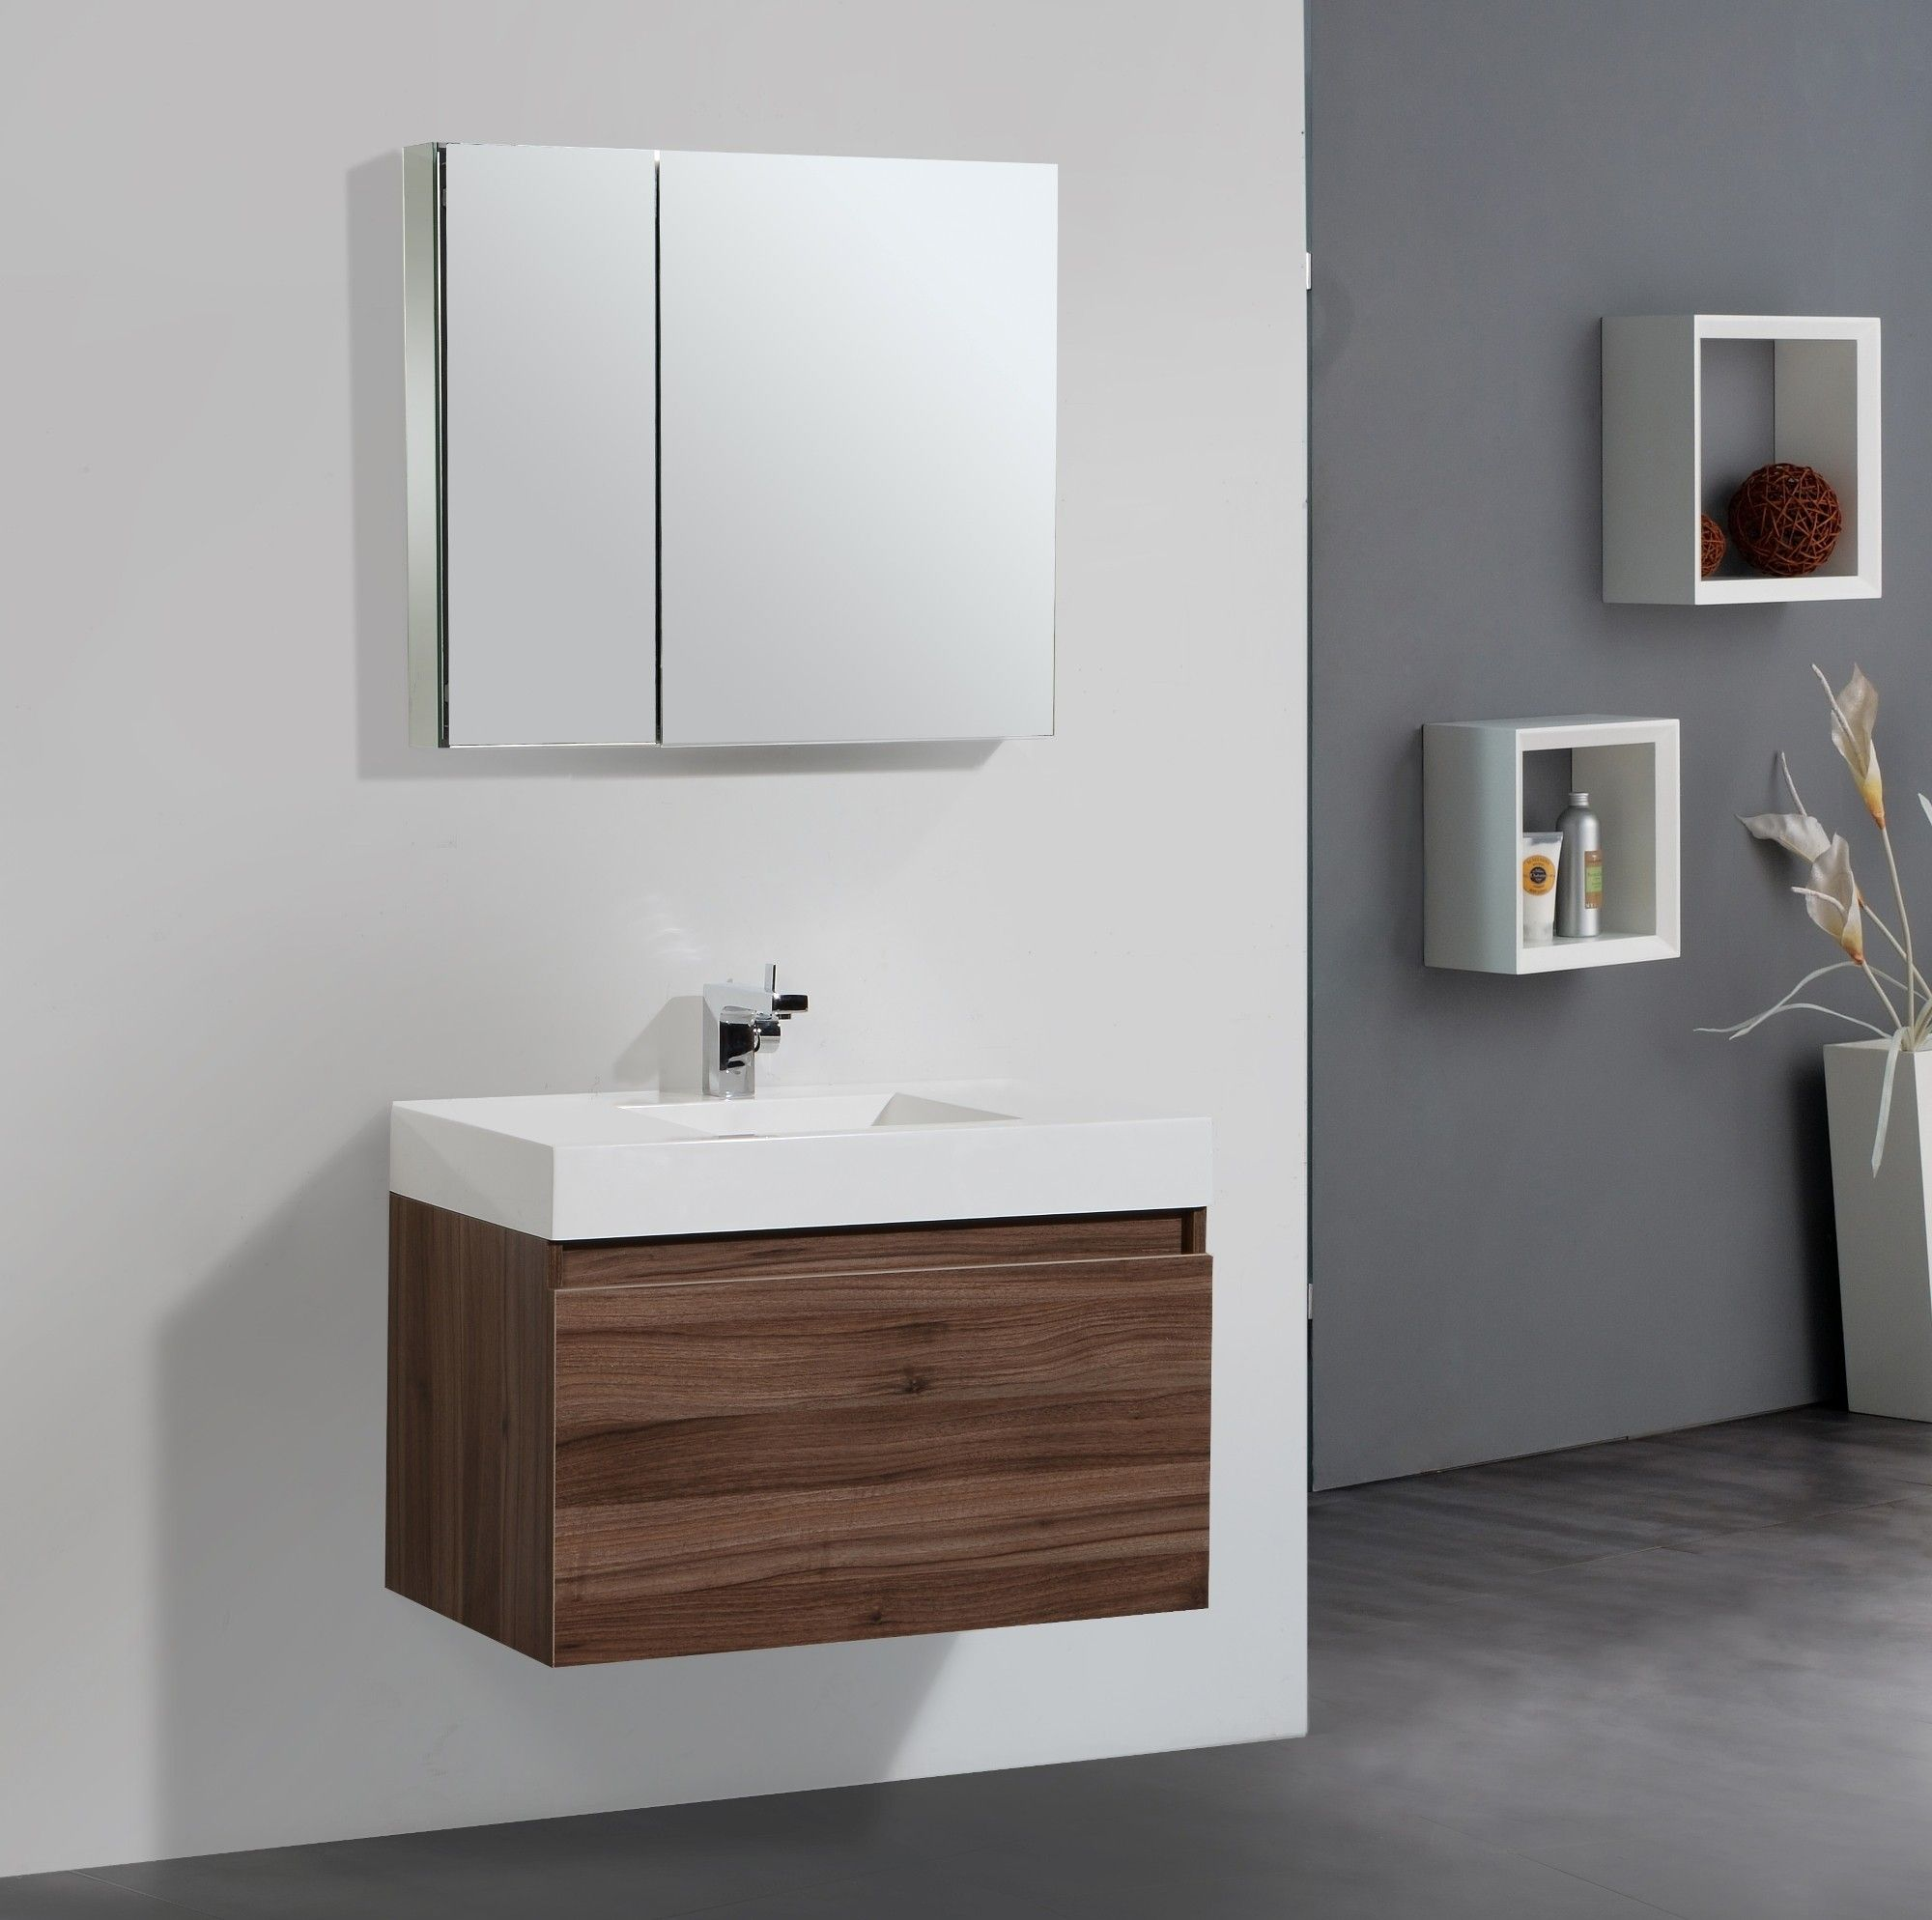 30 Best Bathroom Cabinet Ideas. 30 Best Bathroom Cabinet Ideas   Bathroom sink cabinets  Small